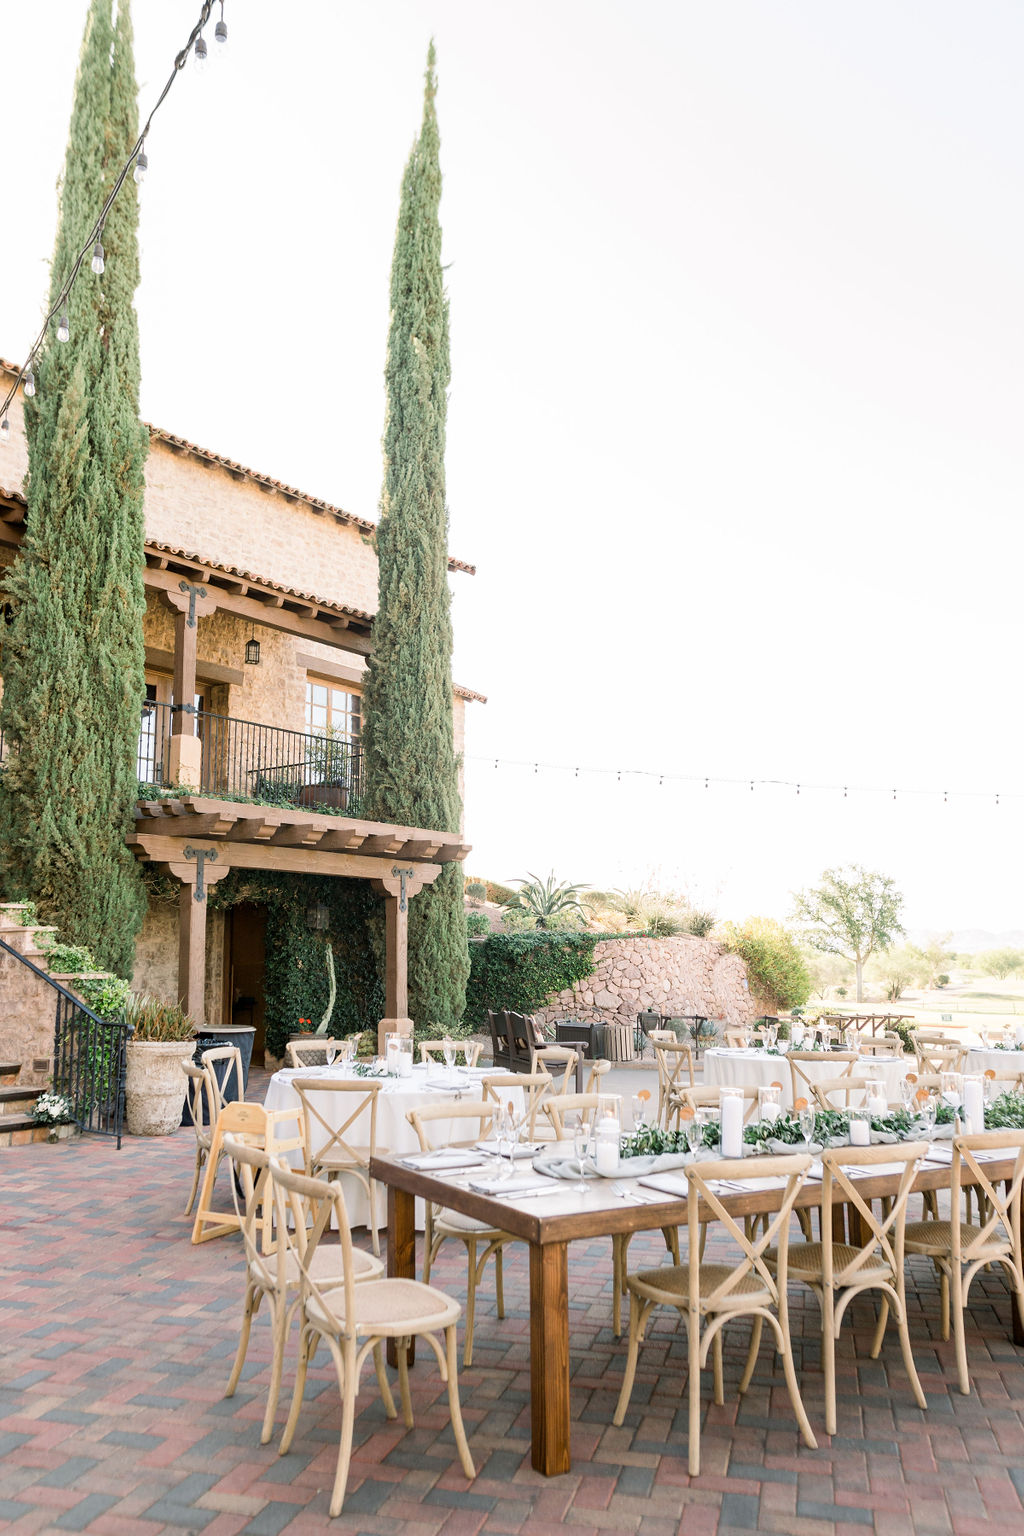 Superstition Mountain Destination Wedding - Arizona Wedding Florist - Phoenix, Scottsdale, Sedona - Wedding Reception with Farm Tables and Garland Centerpieces